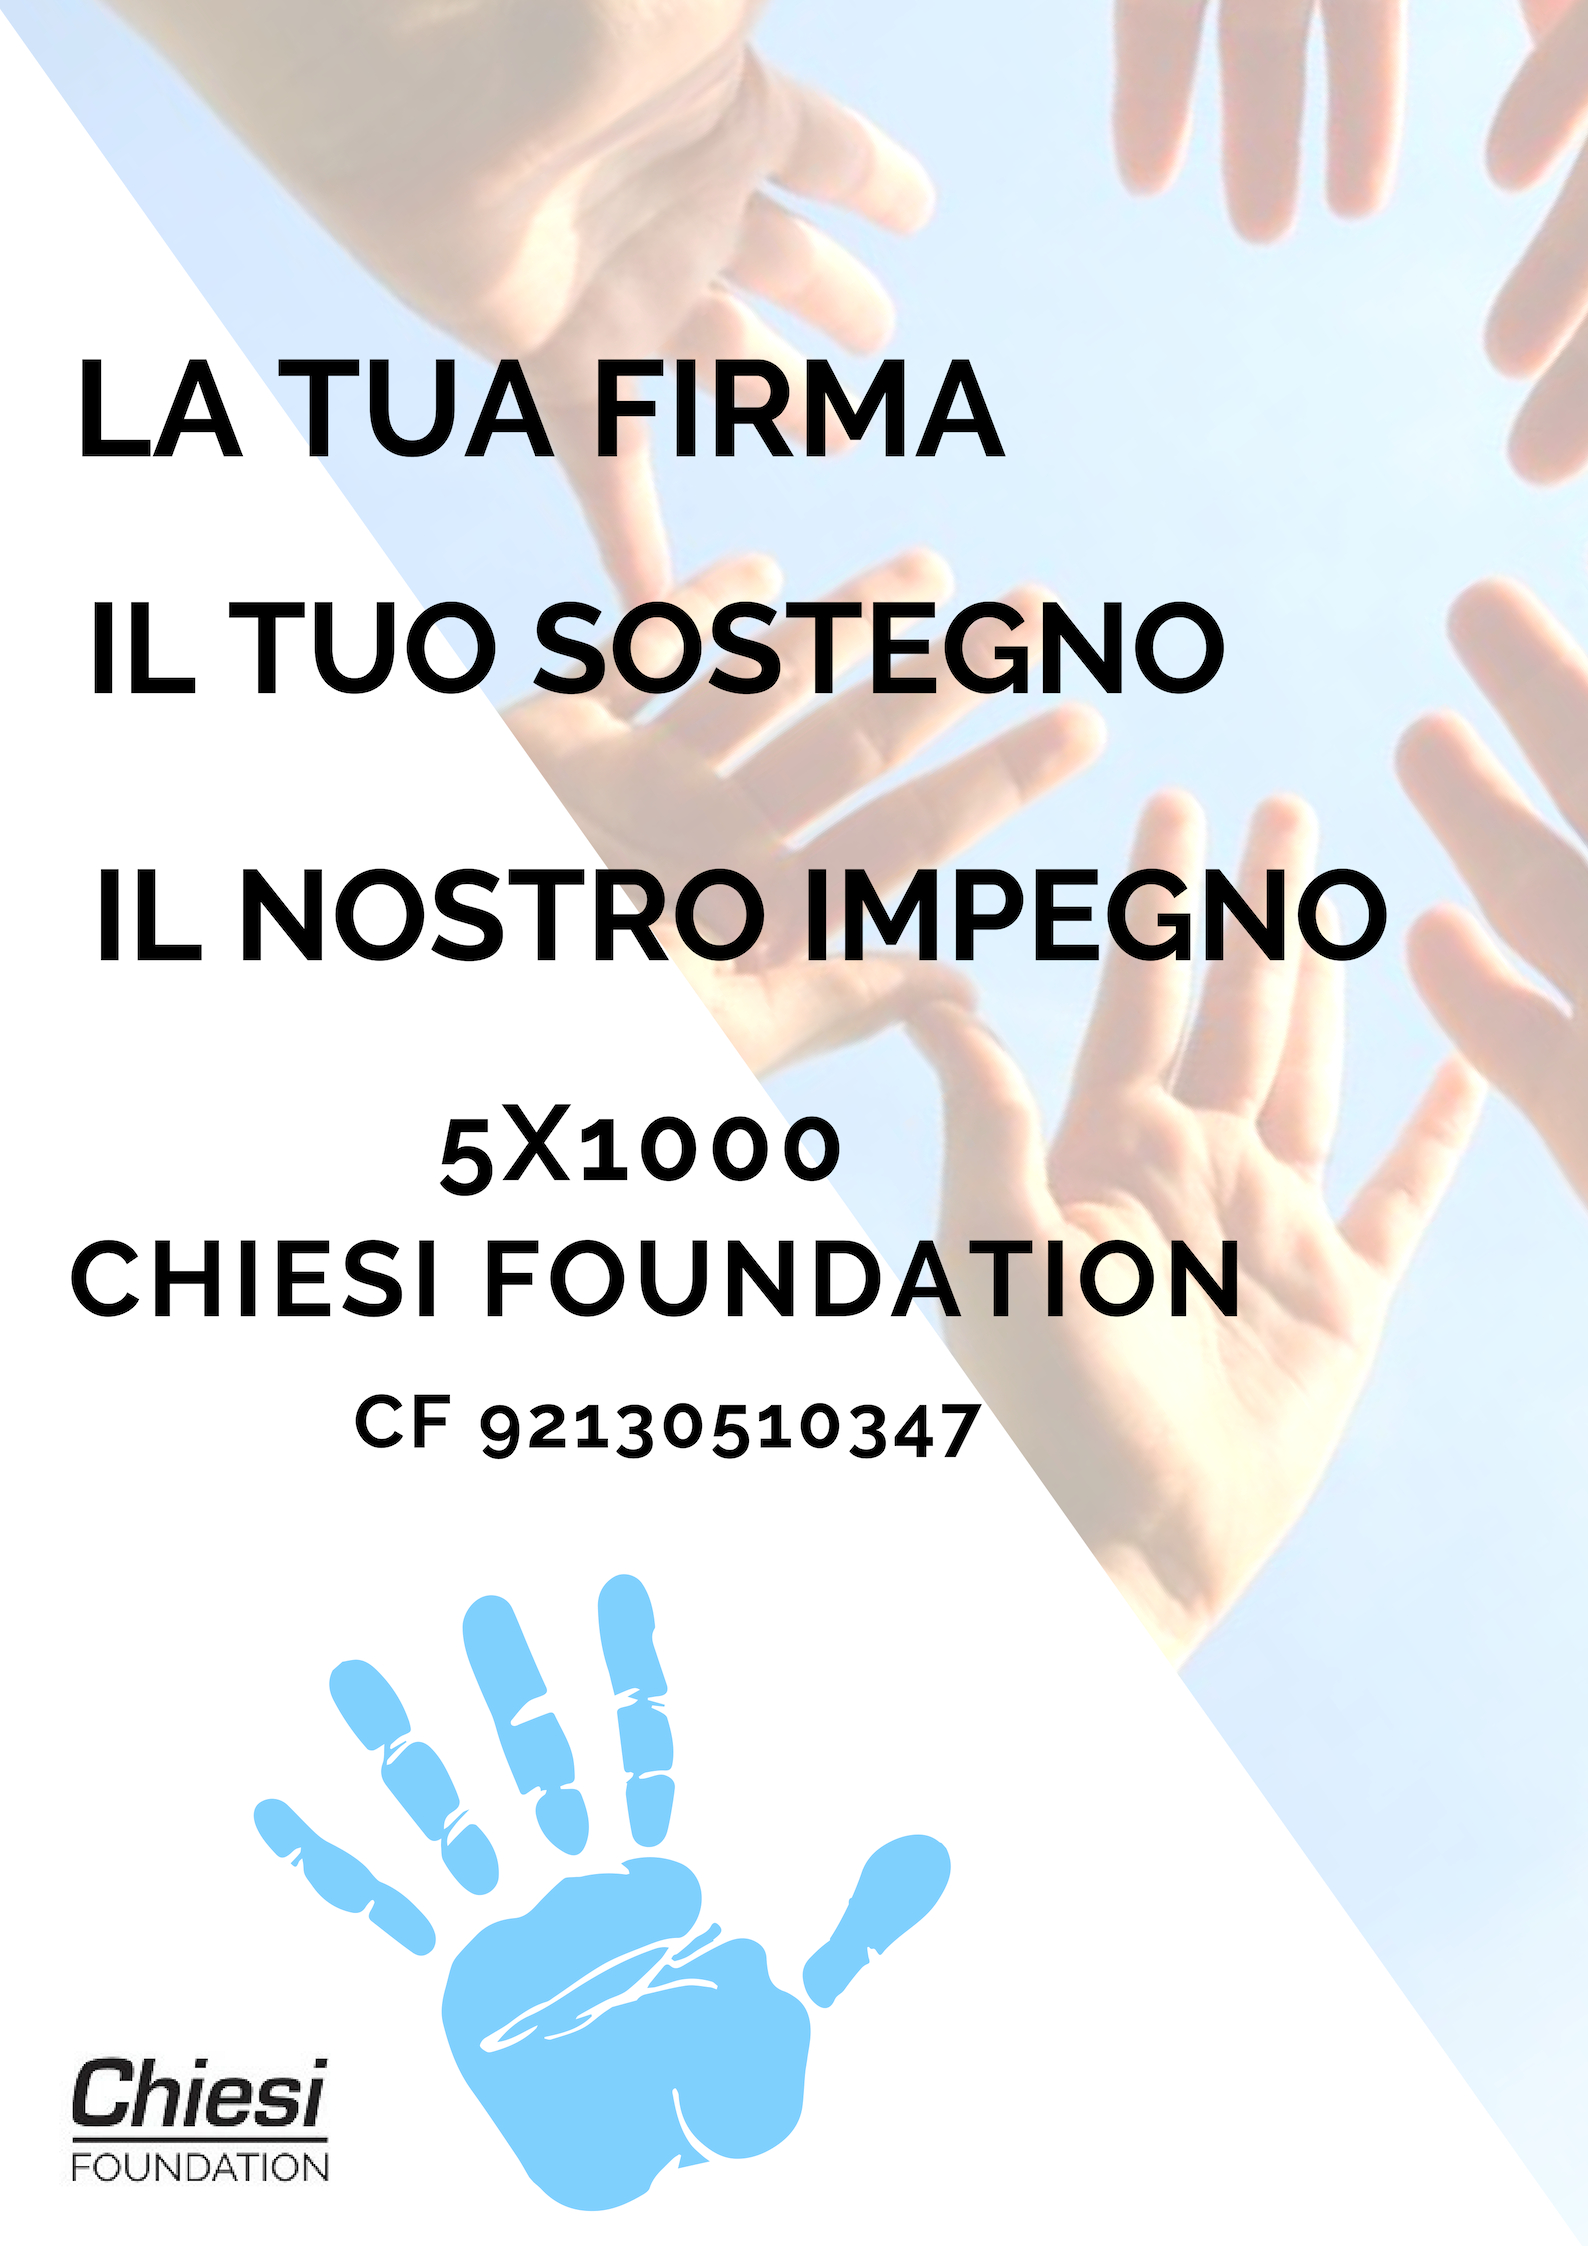 5 x 1000 a Chiesi Foundation